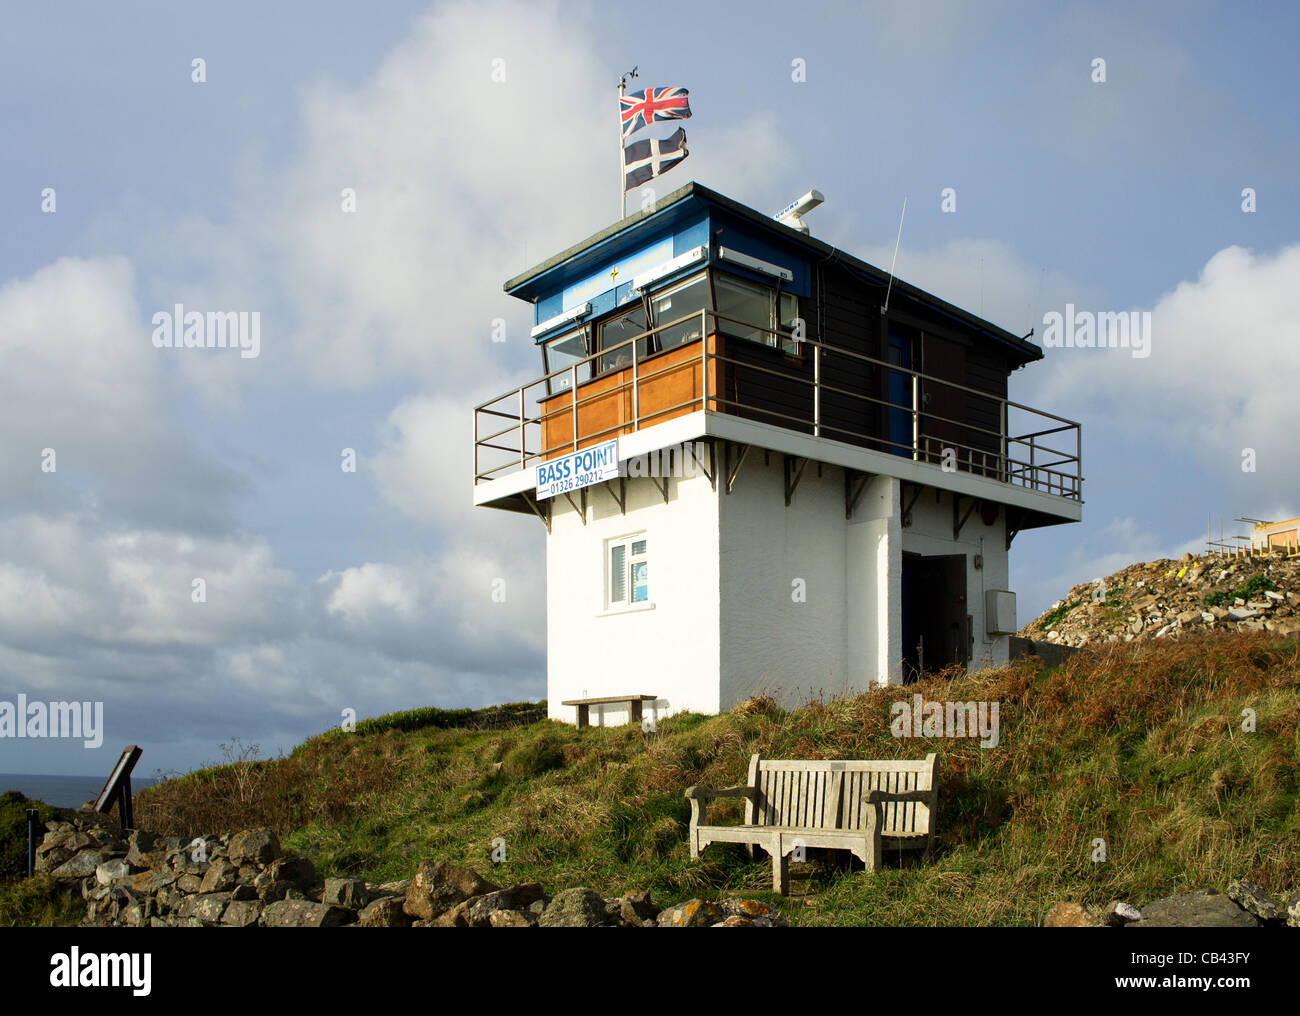 The National Coastwatch Institution lookout station at Bass point on the Lizard peninsular in Cornwall, UK - Stock Image